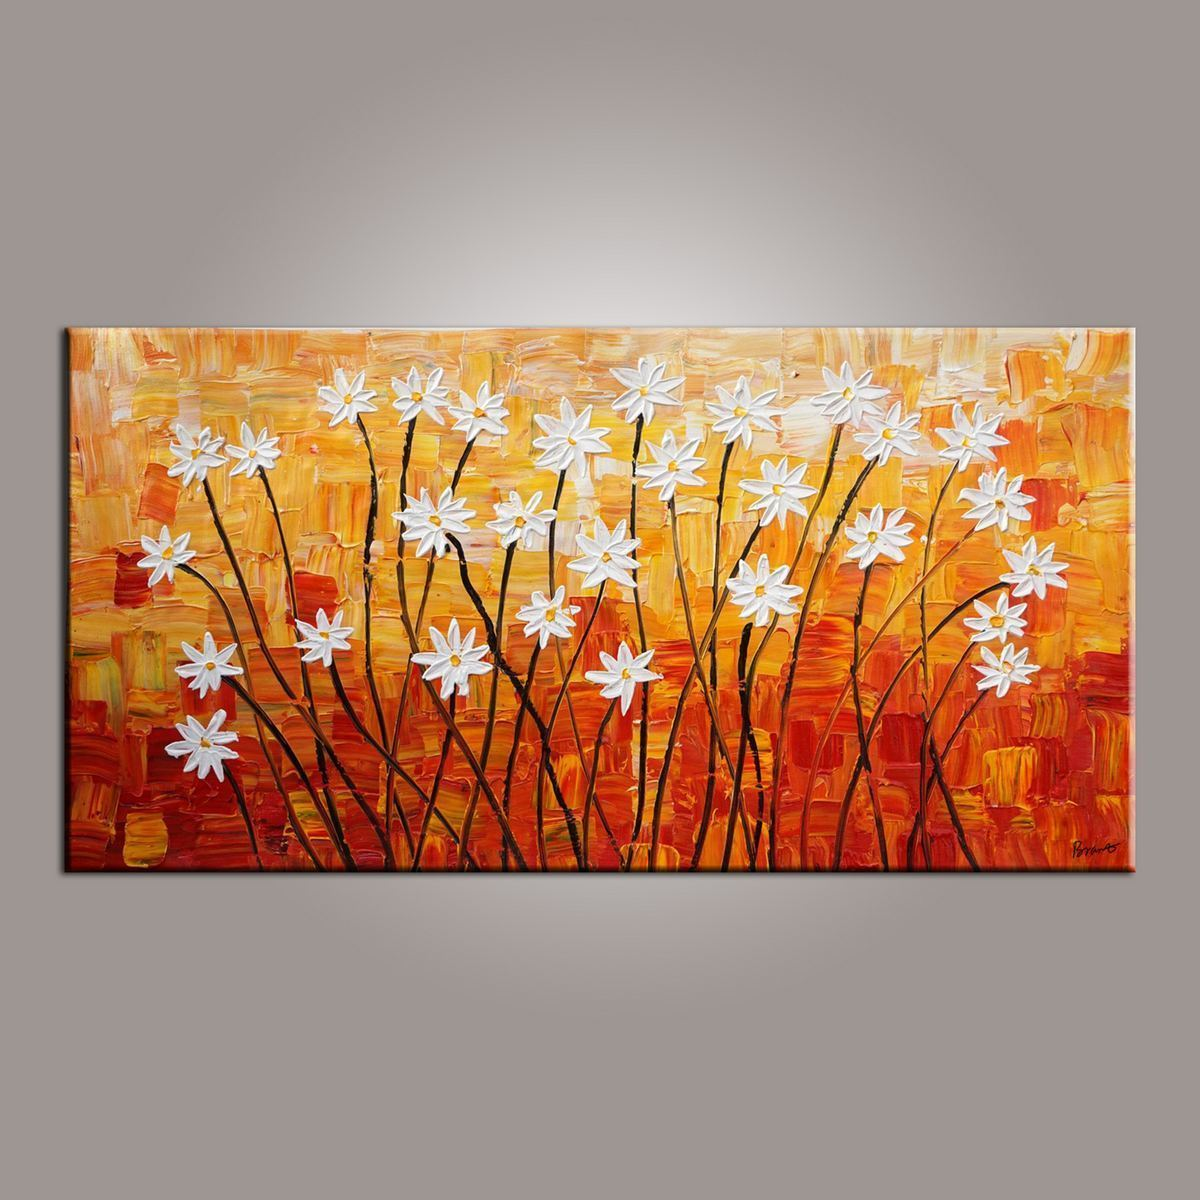 Spring Flower Painting, Painting for Sale, Flower Art, Abstract Art Painting, Canvas Wall Art, Bedroom Wall Art, Canvas Art, Modern Art, Contemporary Art - LargePantingArt.com